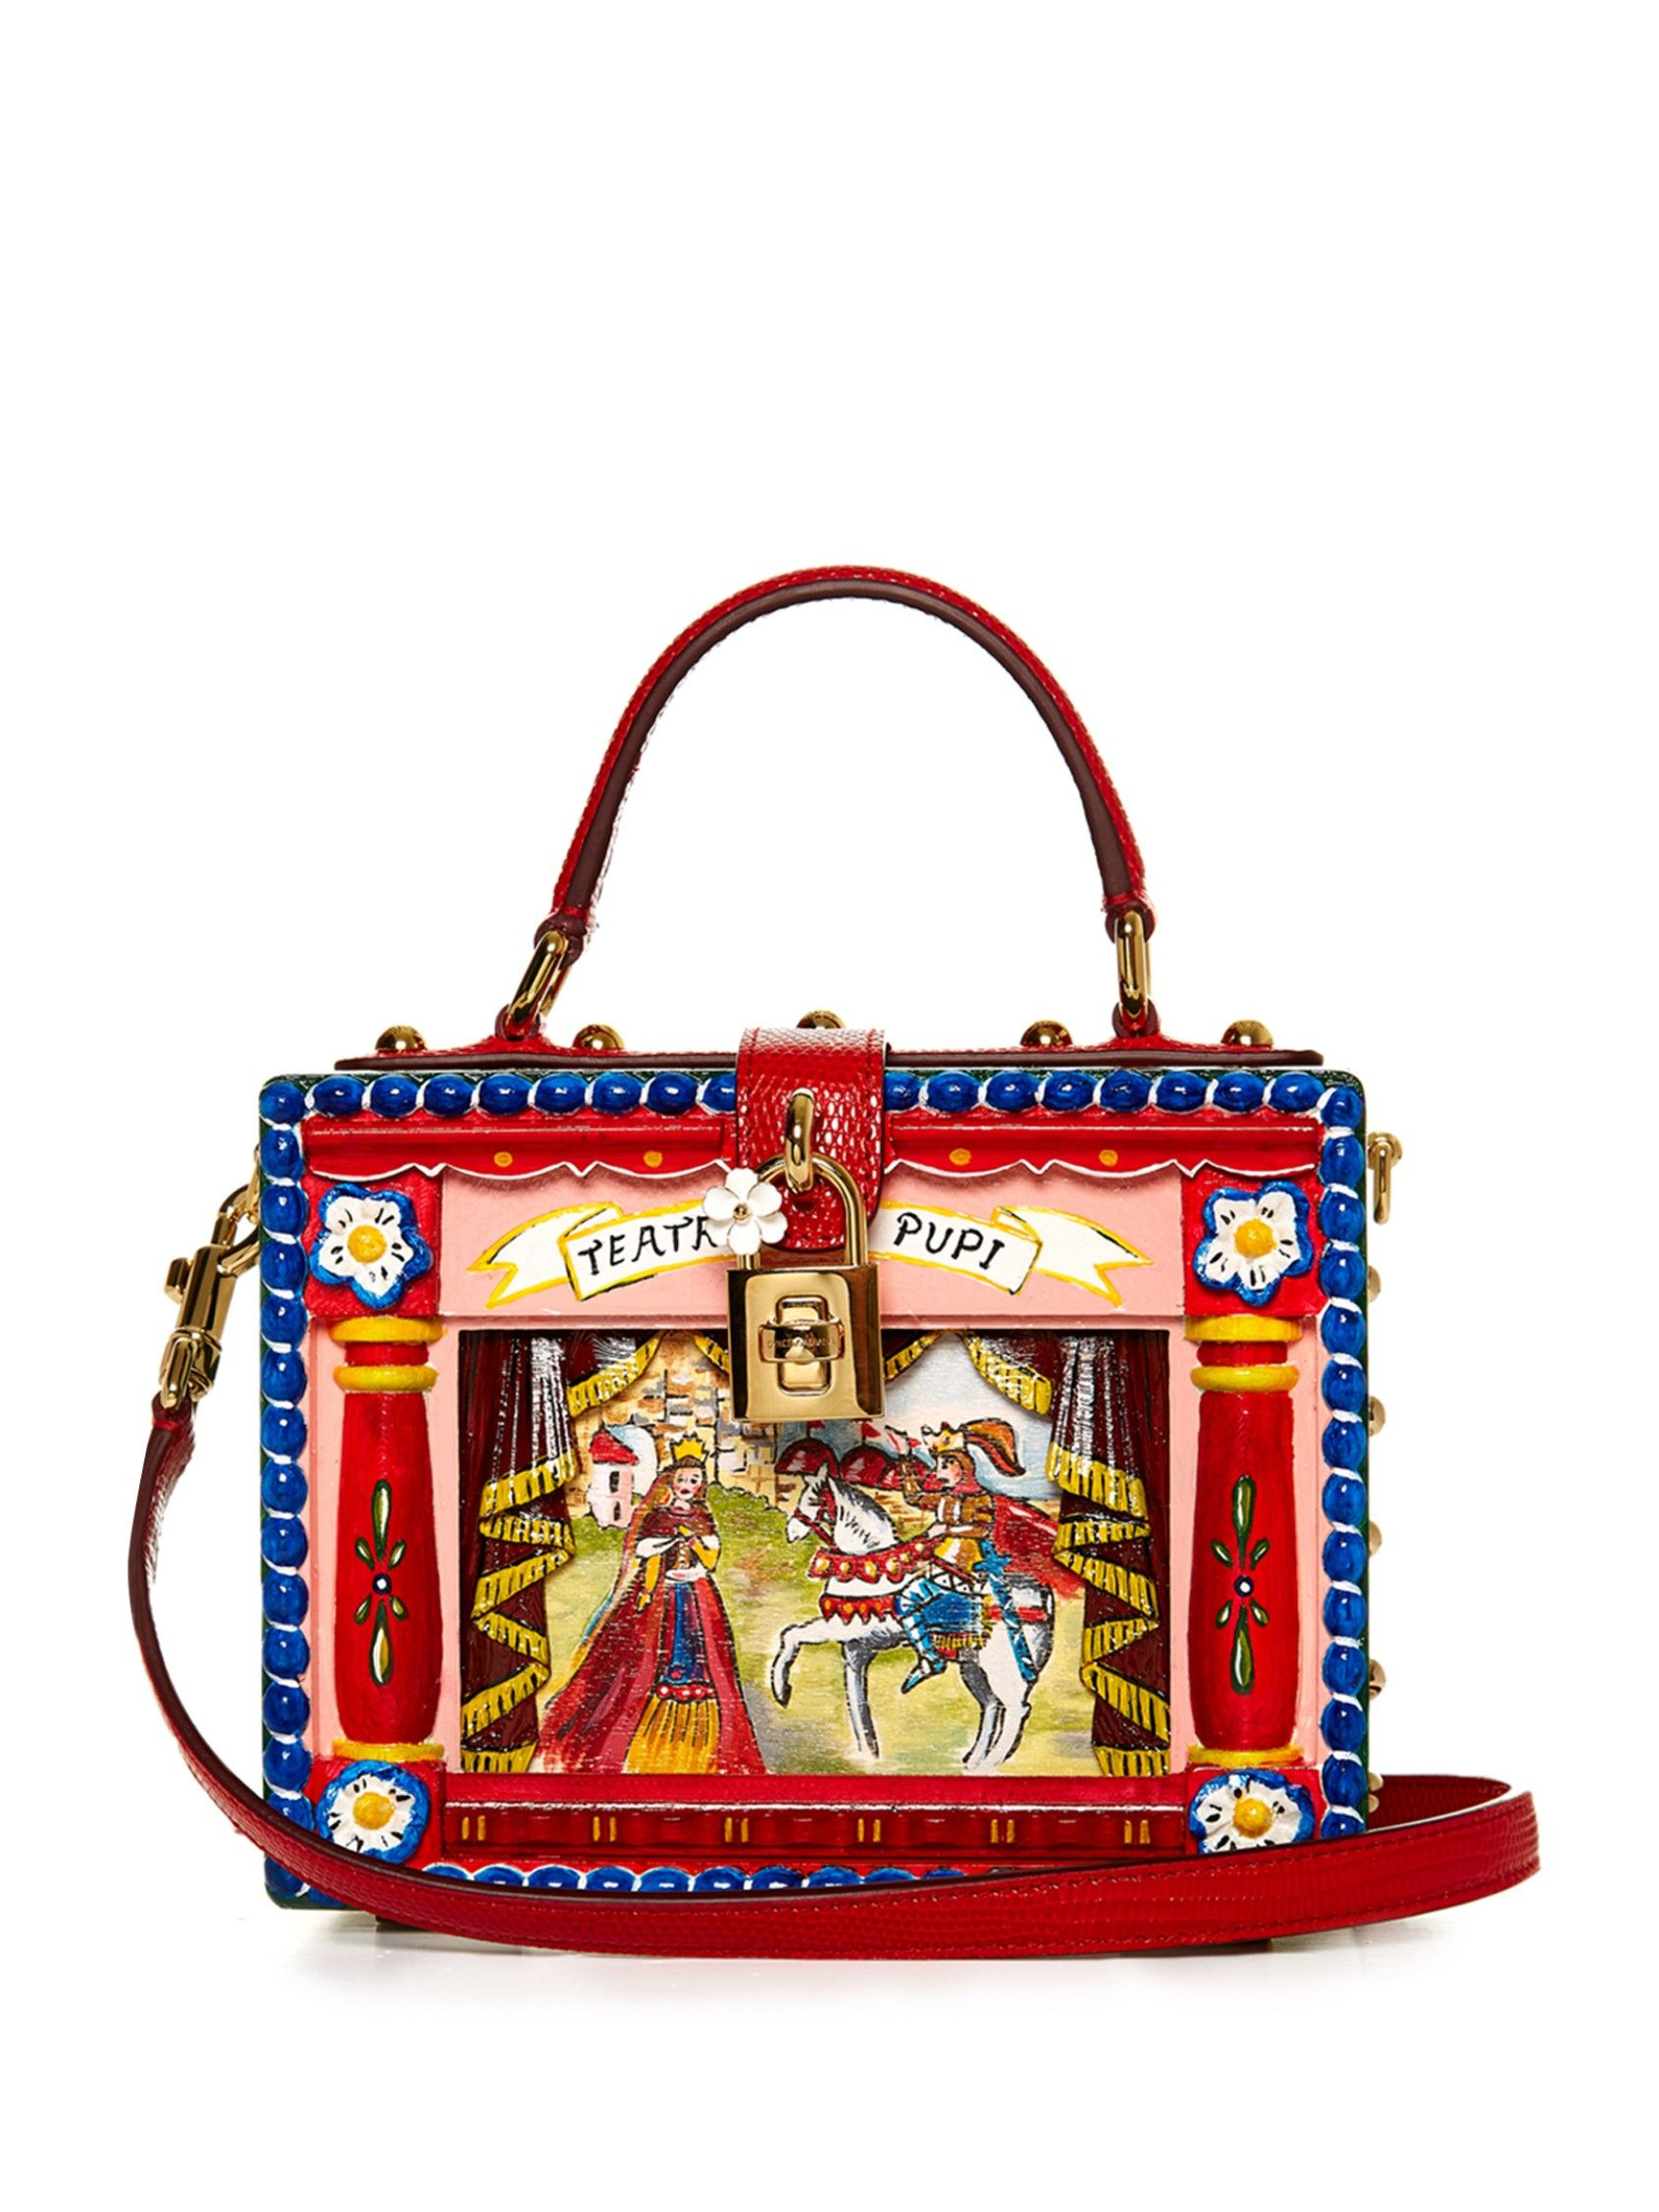 35aa9fbfbe56 Dolce hand-painted Carretto-print box bag